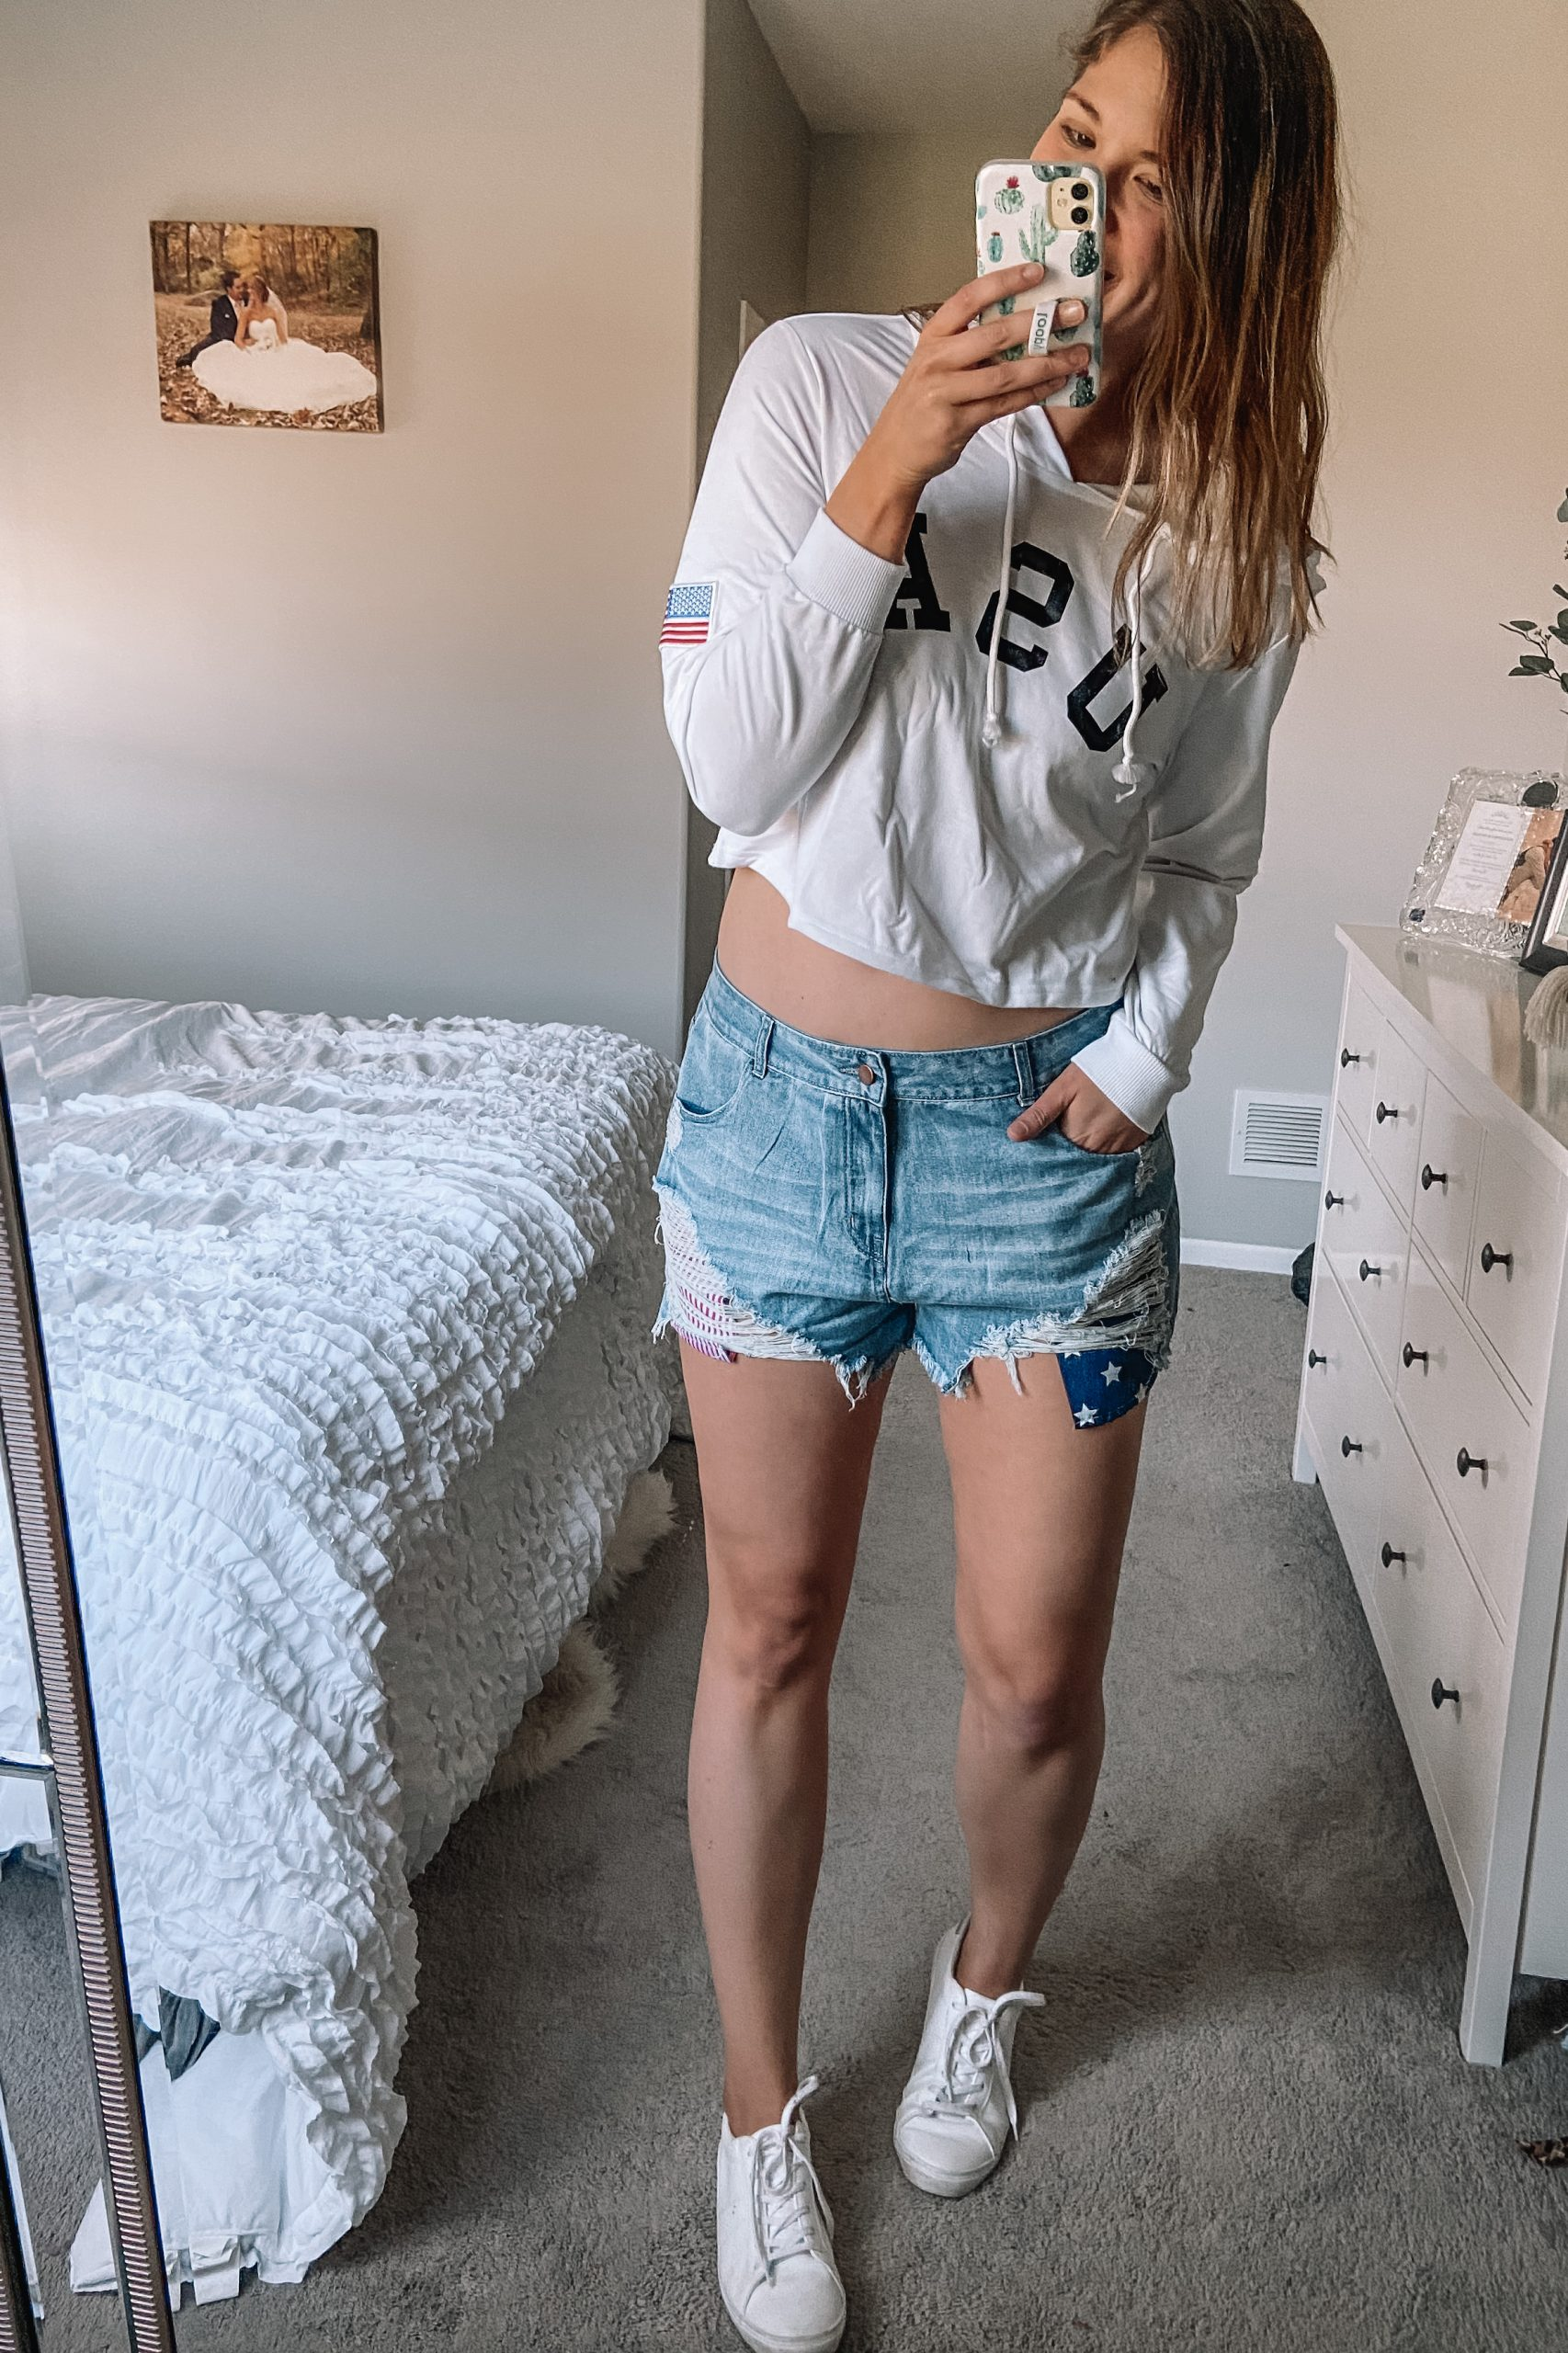 cropped usa sweatshirt white leather tennis shoes american flag pocket jean shorts